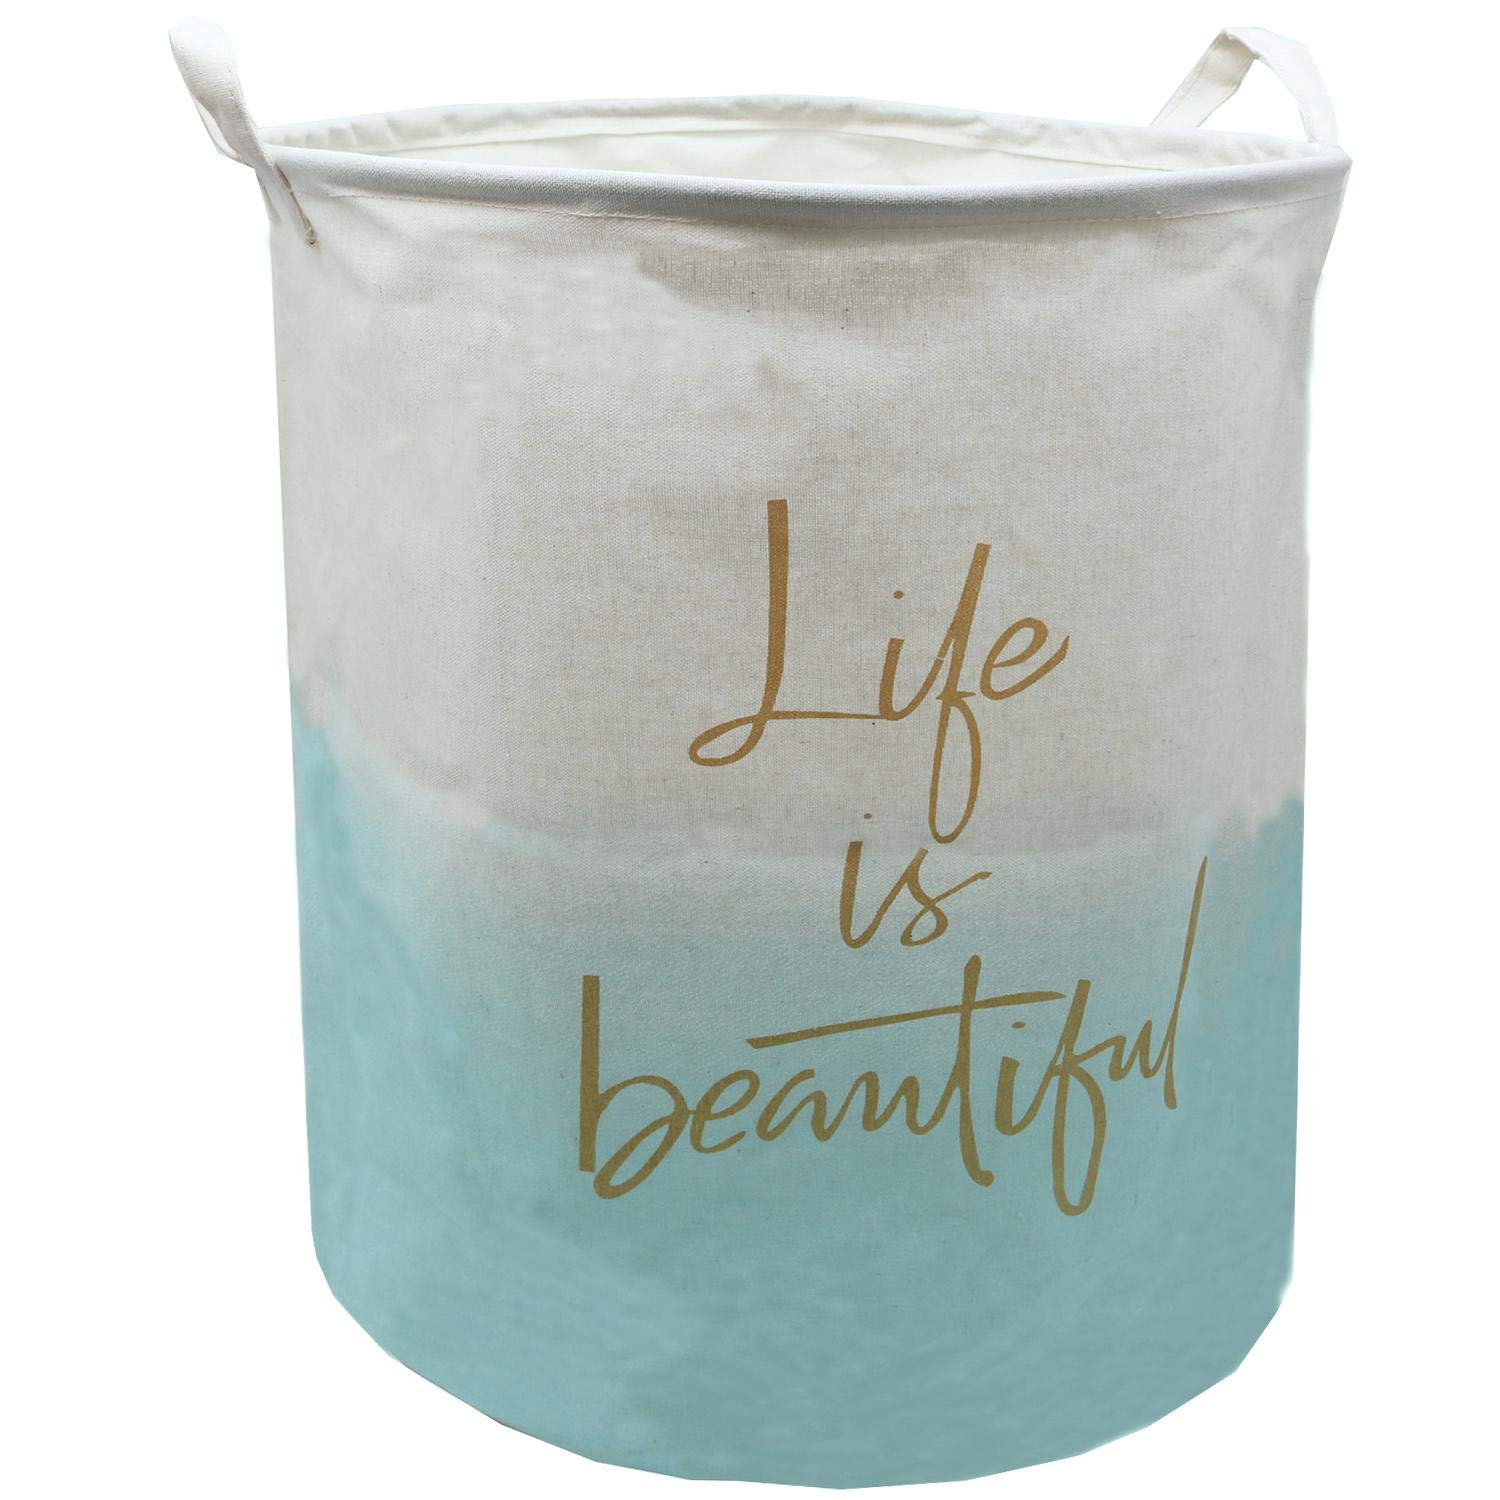 Large All items Limited price sale in the store Canvas Laundry Hamper Collapsible 19.7x15.7 Storage Inch